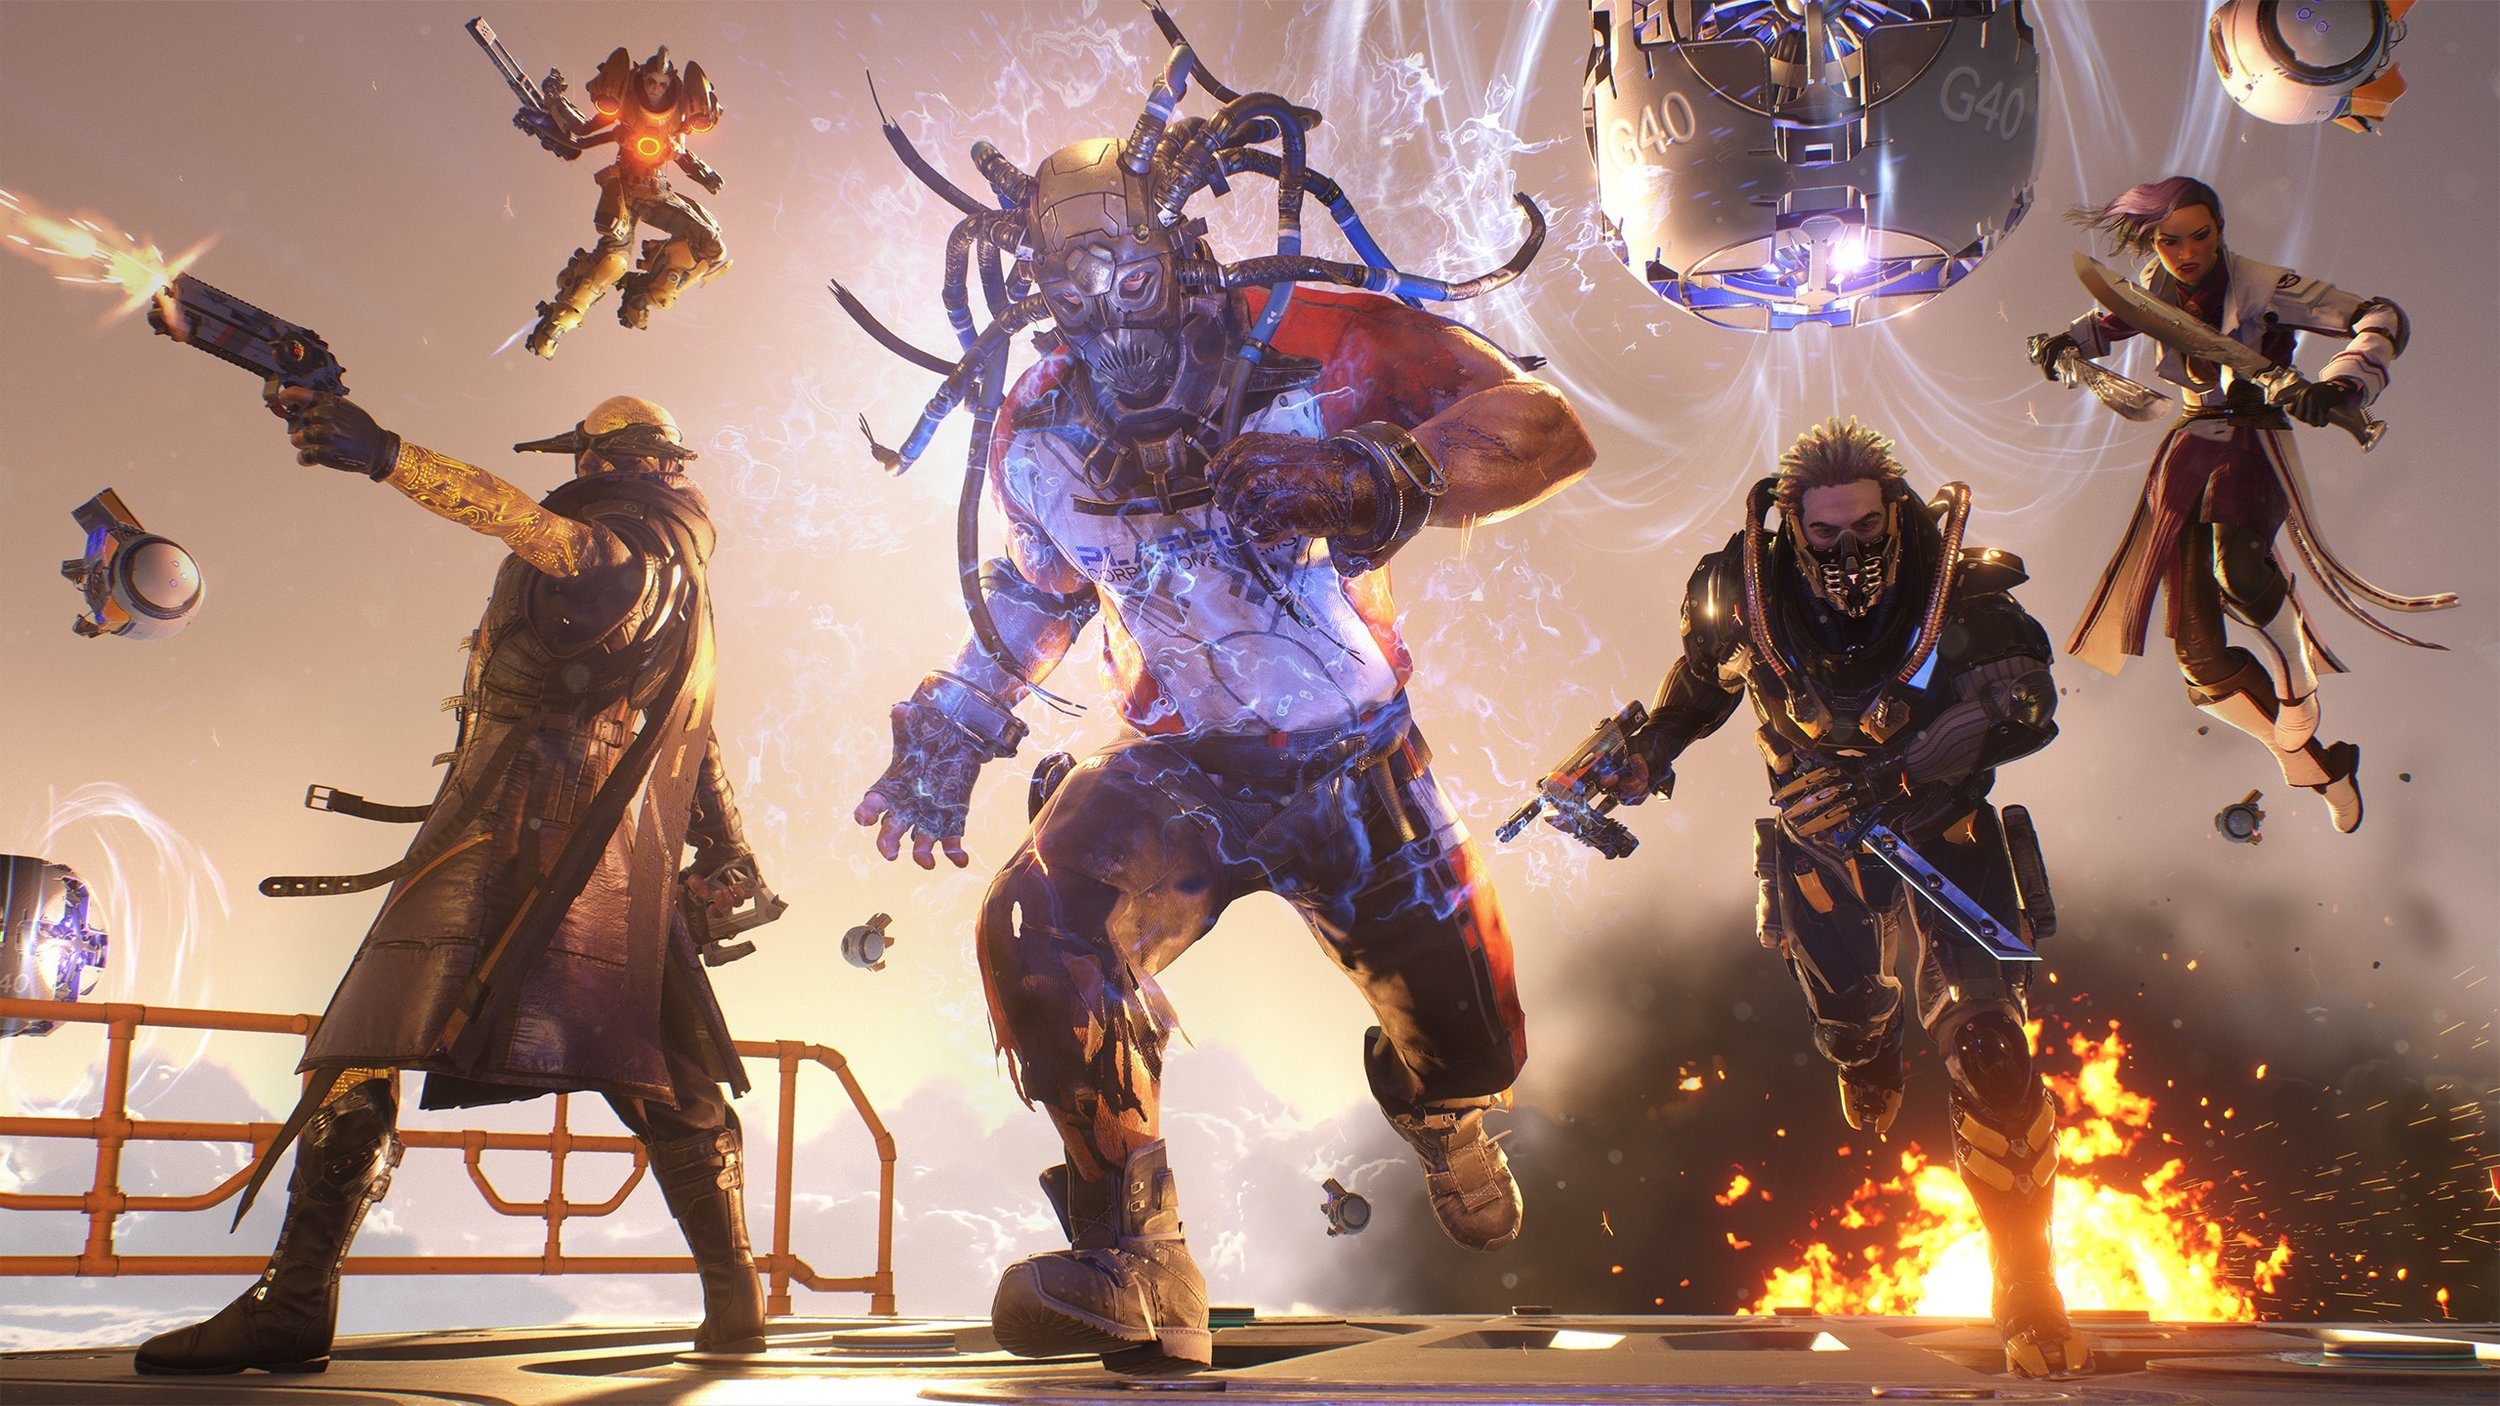 """An example of a team of """"Breakers"""". From left to right: Gunslinger, Vanguard, Titan, Wraith, and Assassin"""